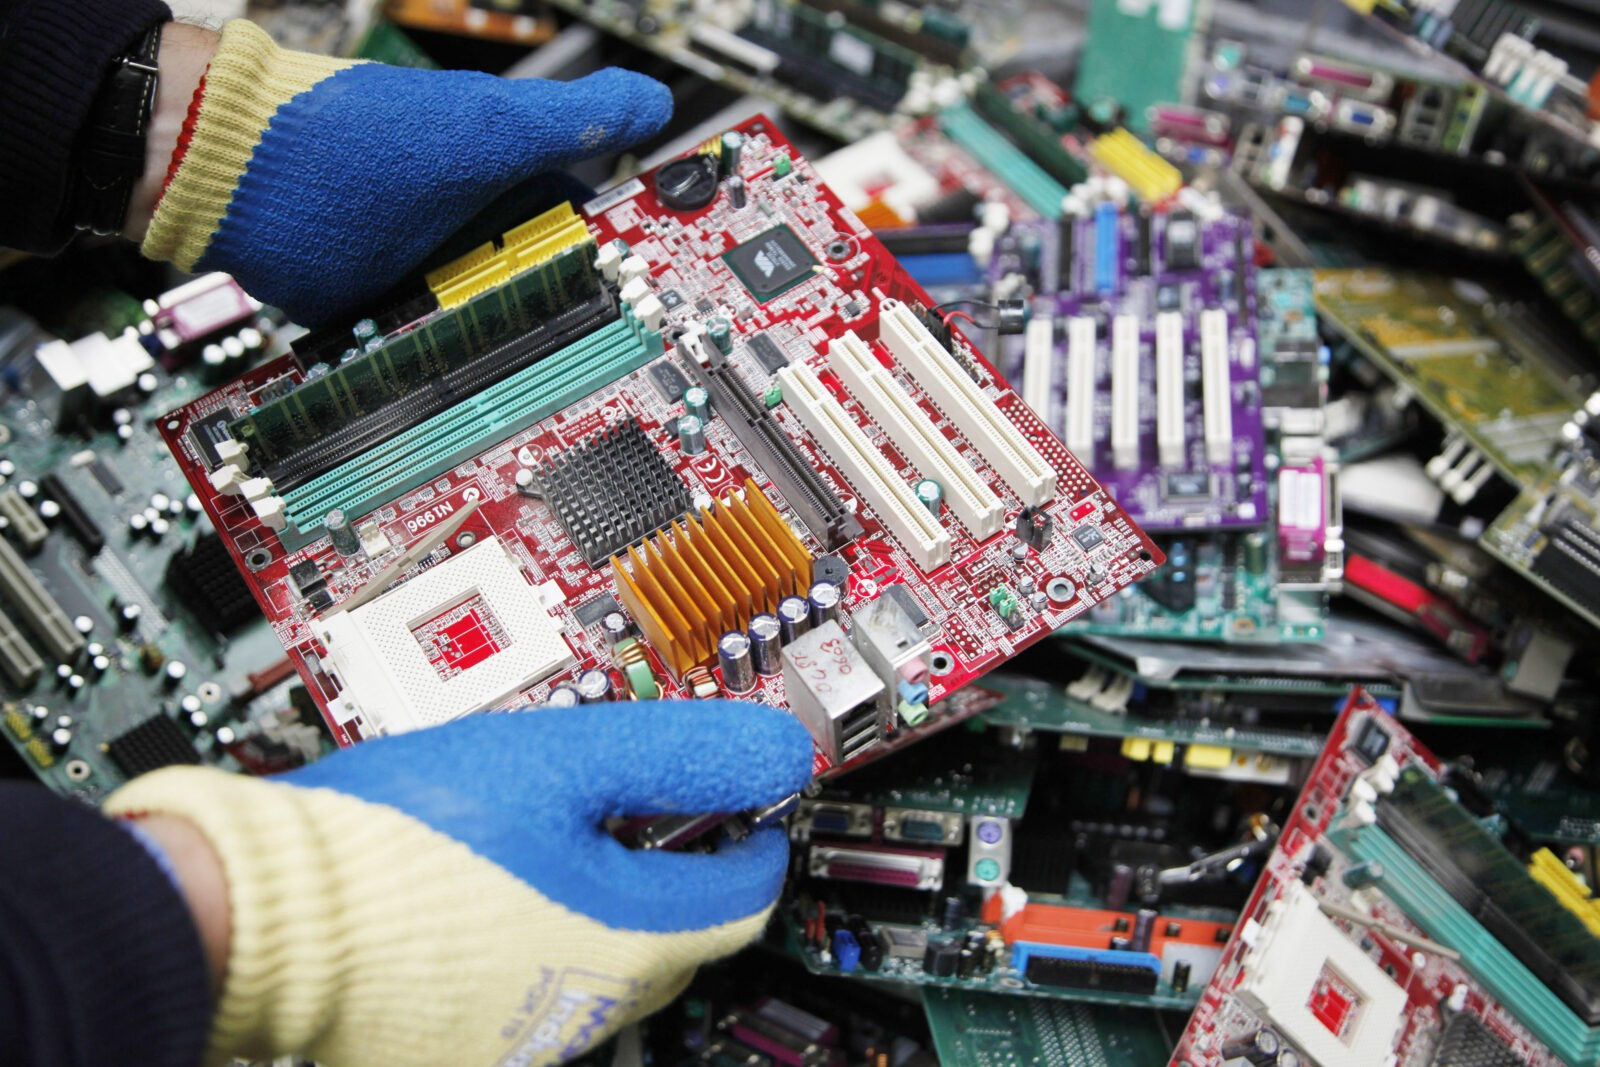 EUROPEAN INDUSTRY LAUNCHES NEW ONLINE PLATFORM ON HOW TO BEST RECYCLE ELECTRONIC WASTE